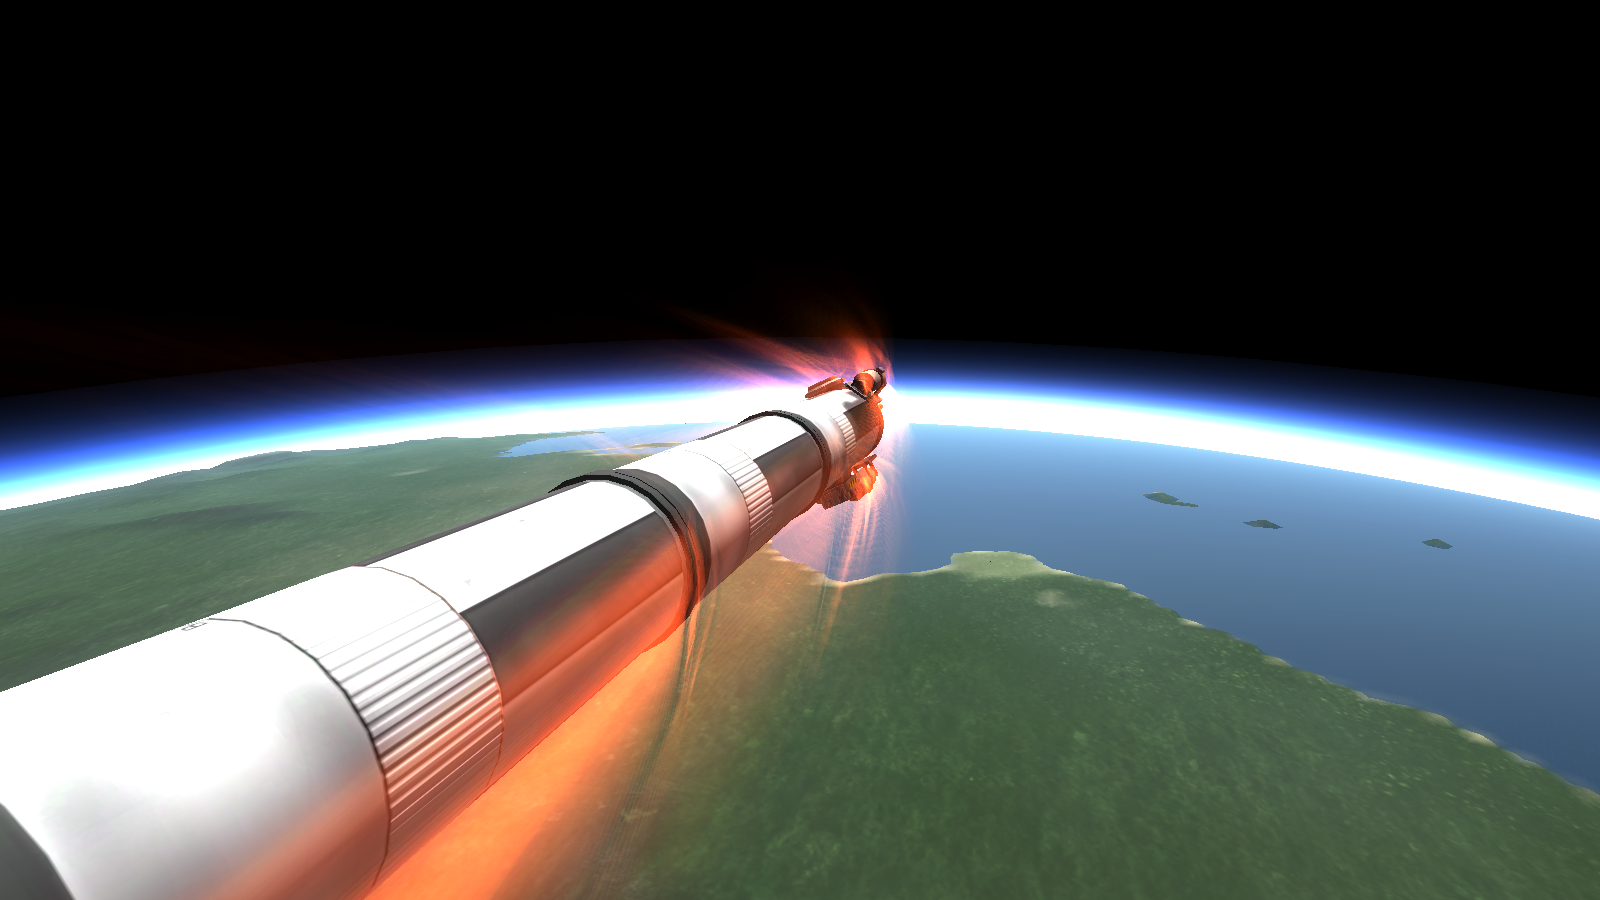 simple rocket kerbal space program - photo #30